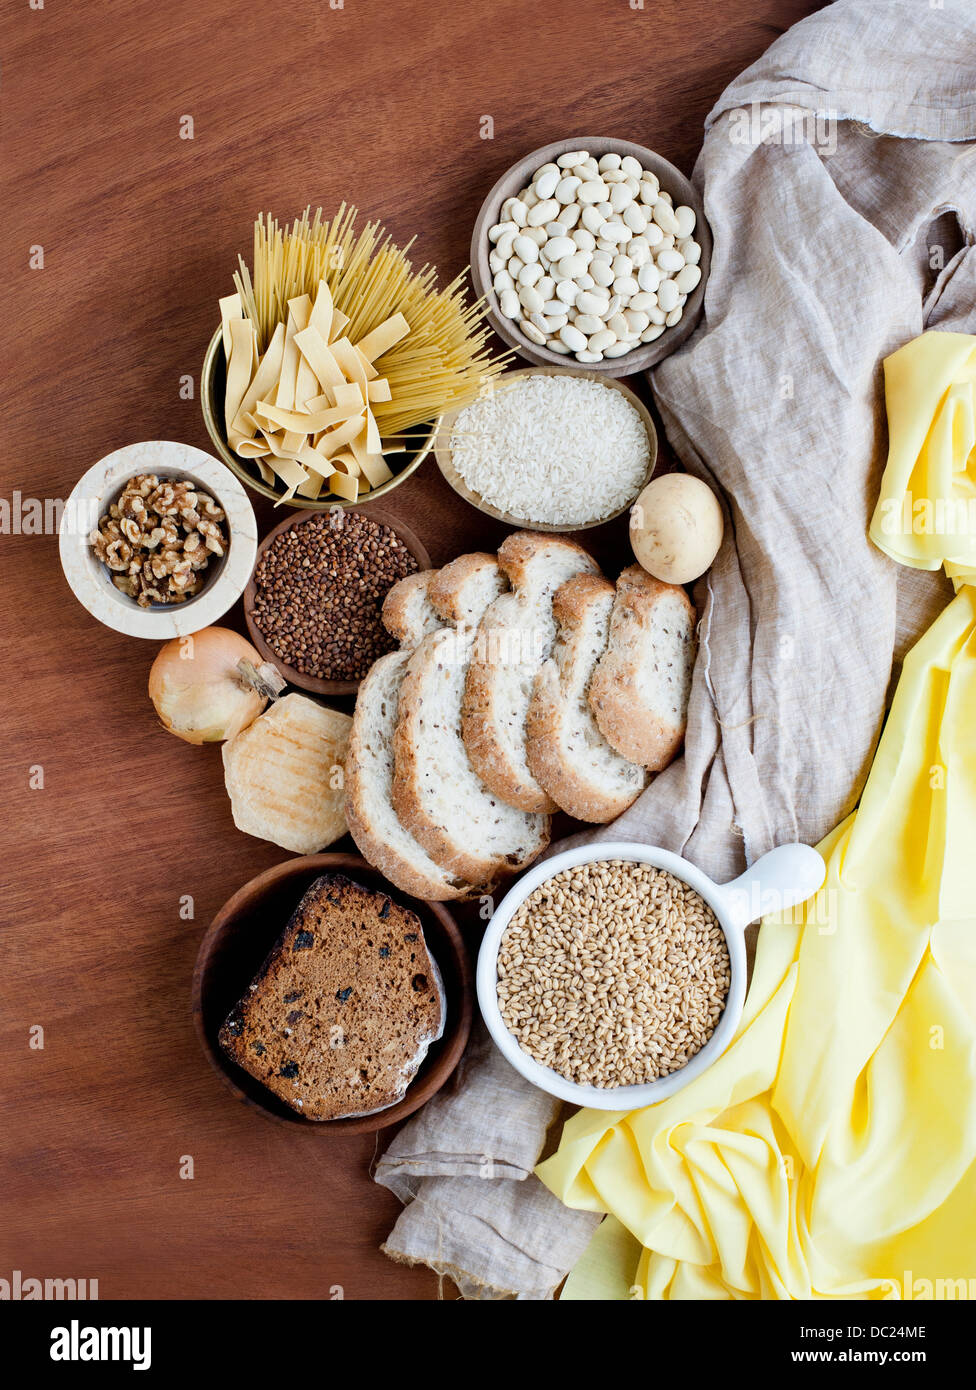 Group of carbohydrates - Stock Image